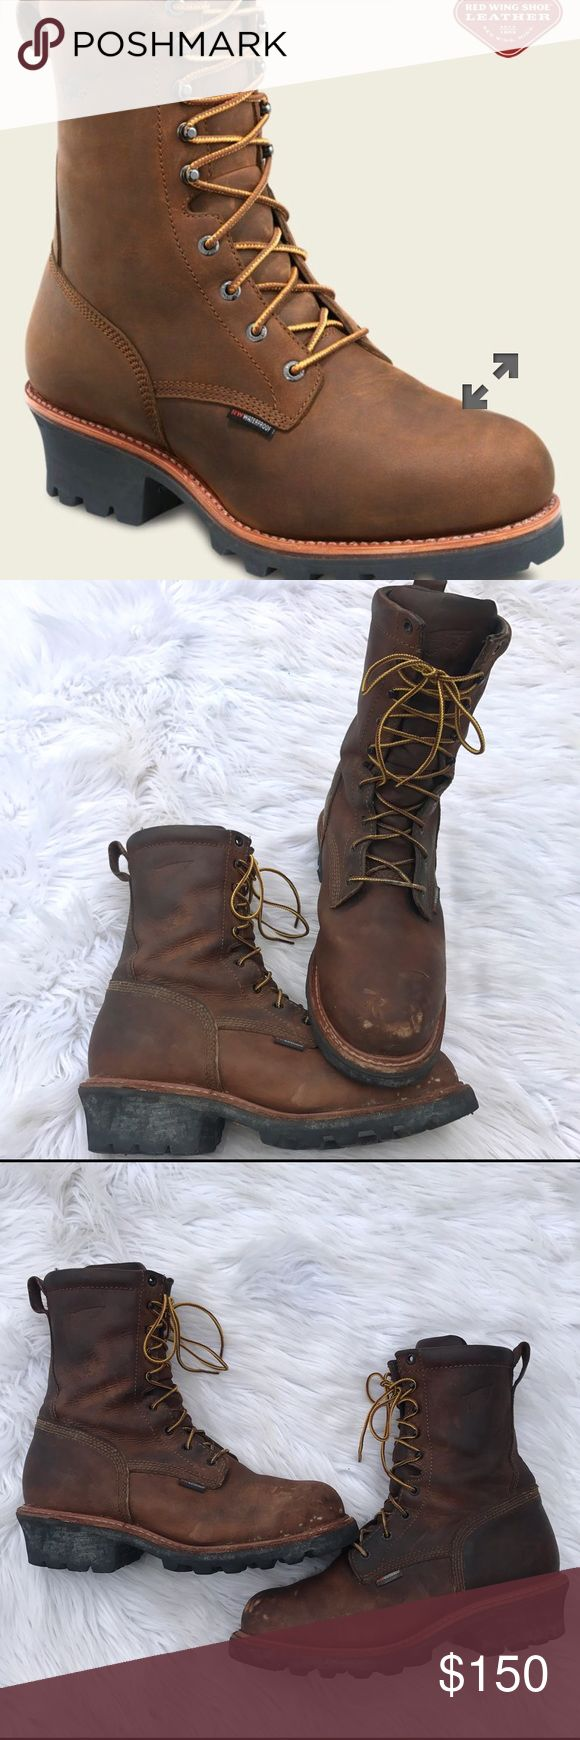 Red Wing - 9in steel toe, water proof, logger 4420 Red Wing 4420 - 9inch steel toe, electrical hazard, waterproof lineman boots. Great very lightly used condition. These boot are amazing. Just broken in and I found a new job and don't need them any longer. Red wings are the best made work boots on the planet. I would say they have 95% of their life in them still. Red Wing Shoes Shoes Boots